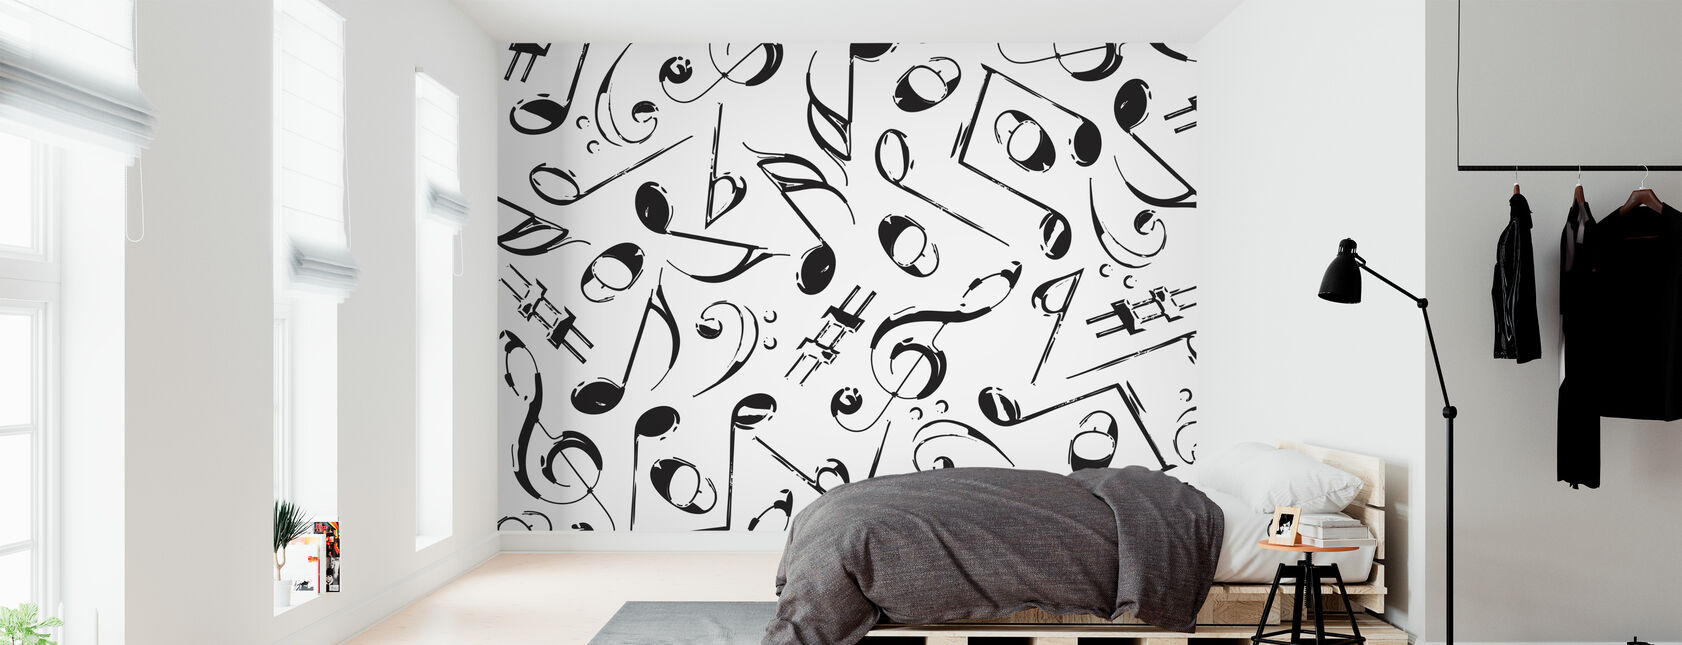 Grunge Musical Notes - Wallpaper - Bedroom